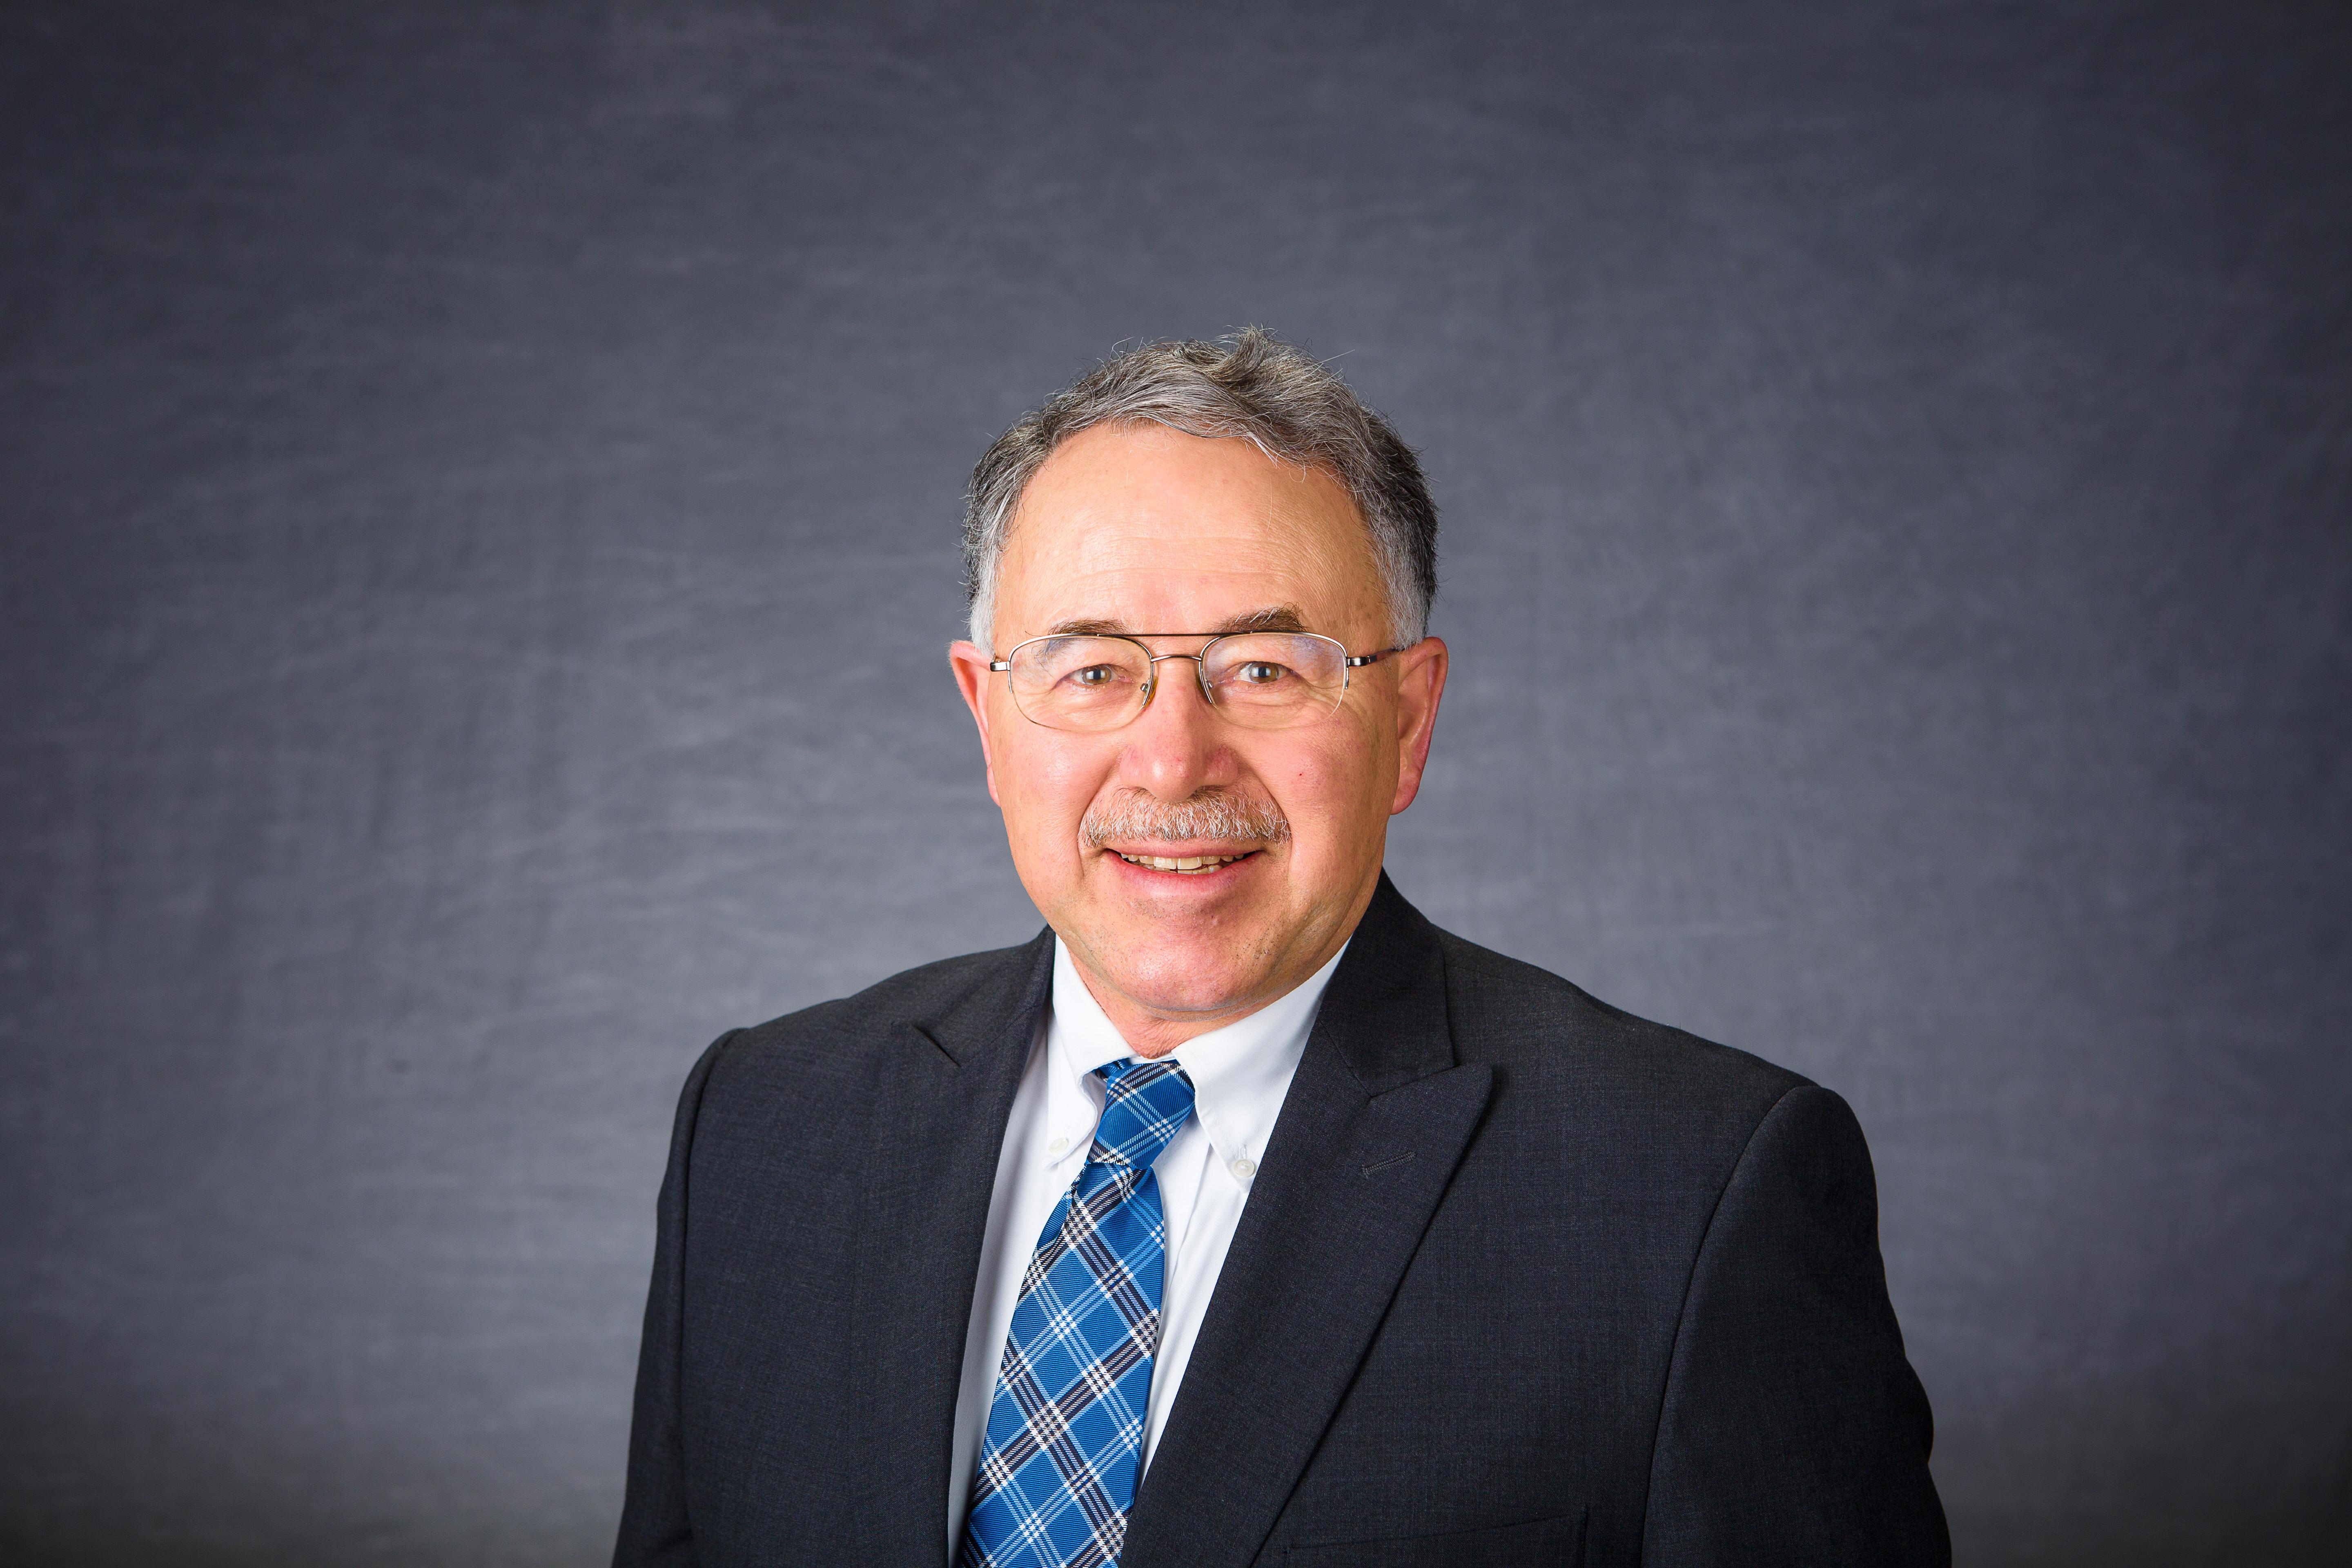 Larry Grabau received the UK Global Impact Award for Distinguished Faculty Achievement in Education Abroad. Photo by Matt Barton, UK agricultural communications.